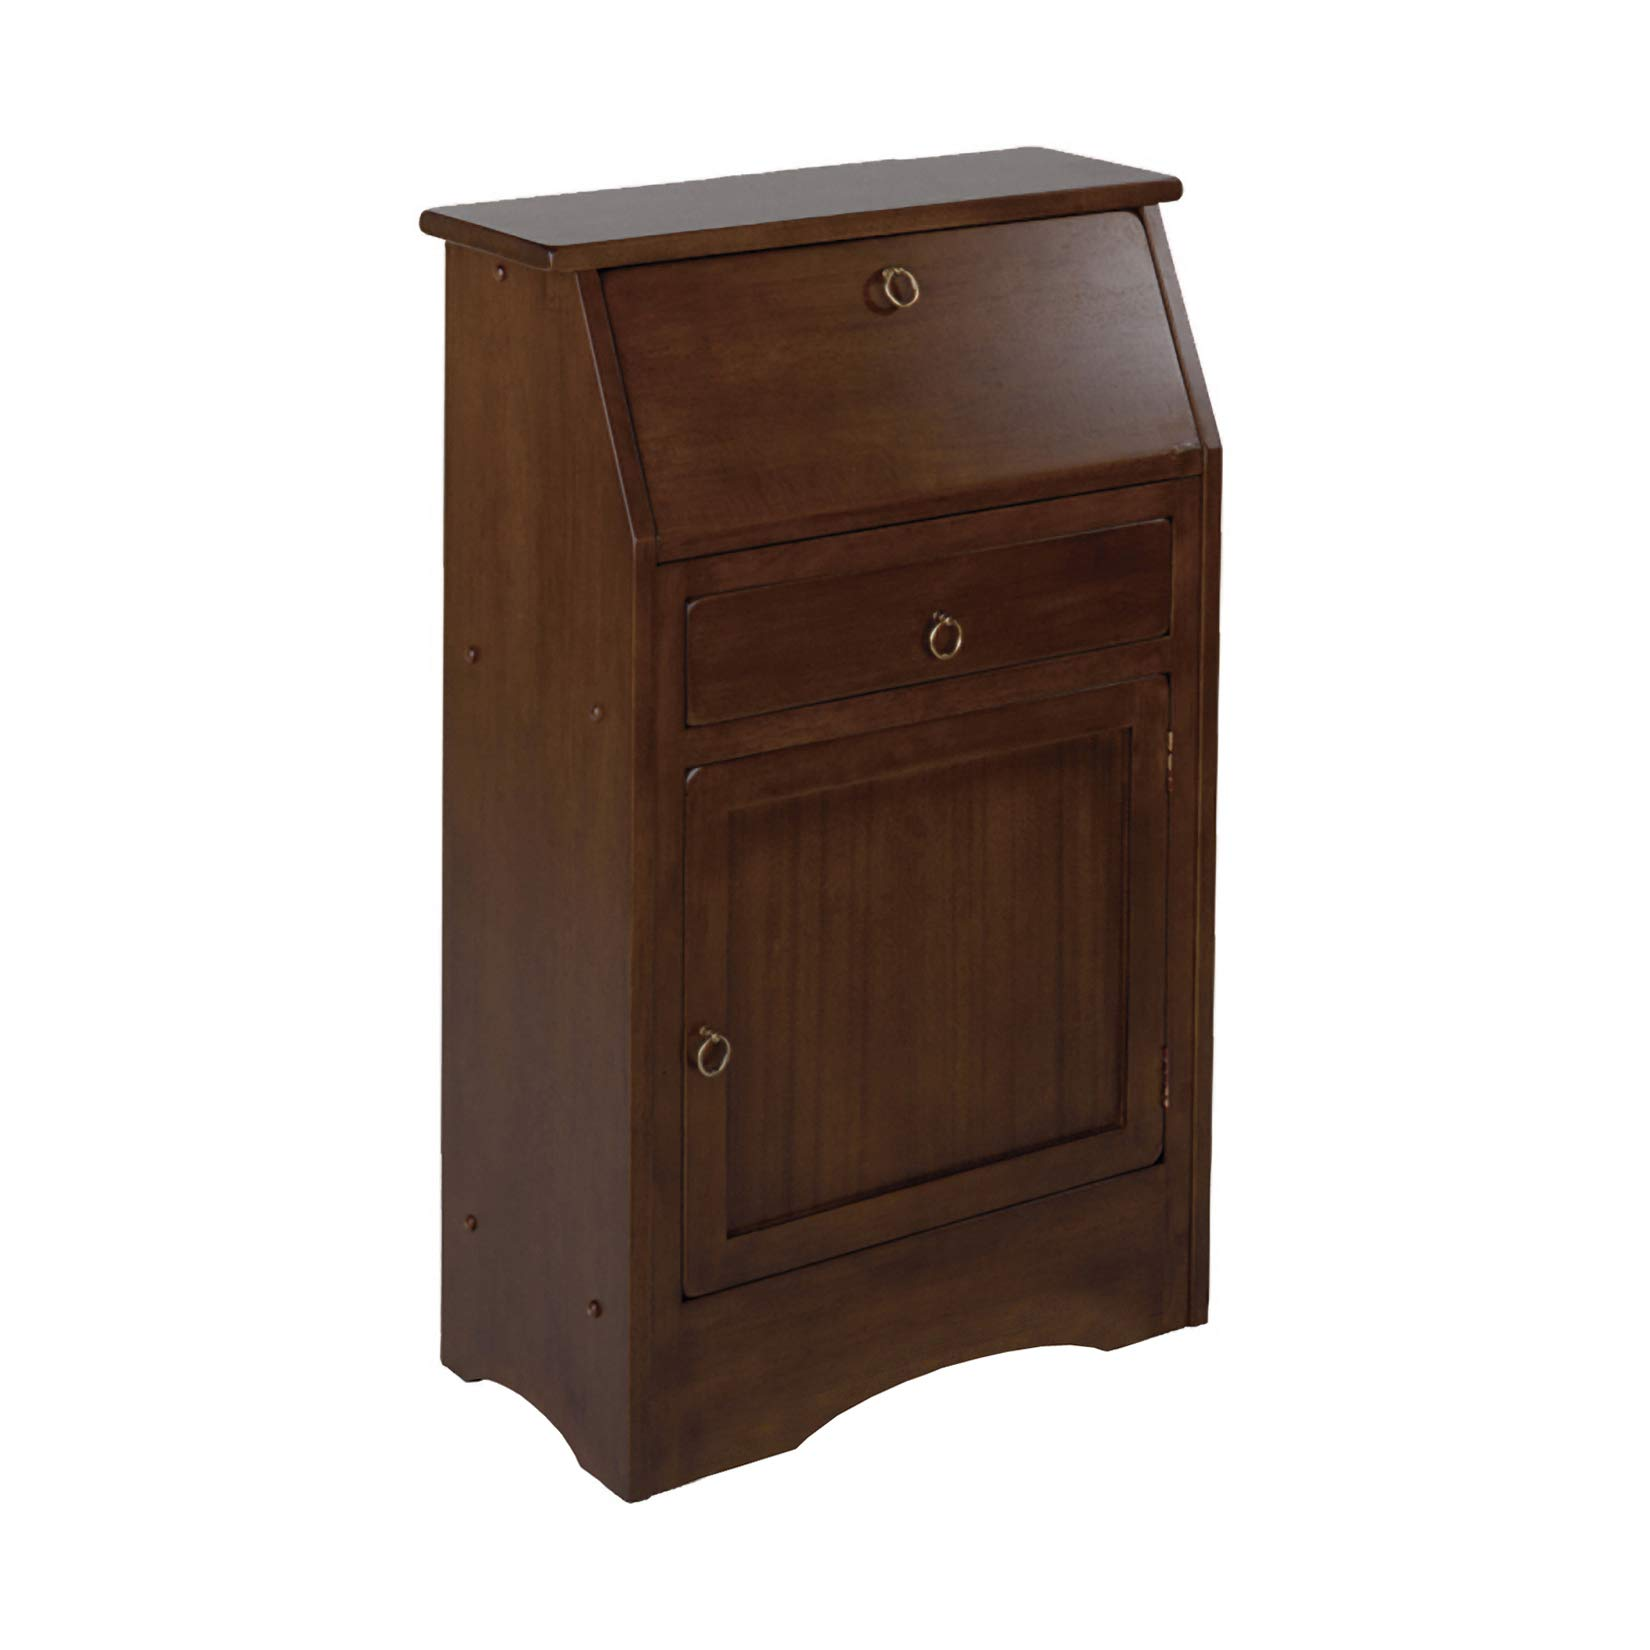 Winsome Wood 94339 Regalia Home Office, Walnut by Winsome Wood